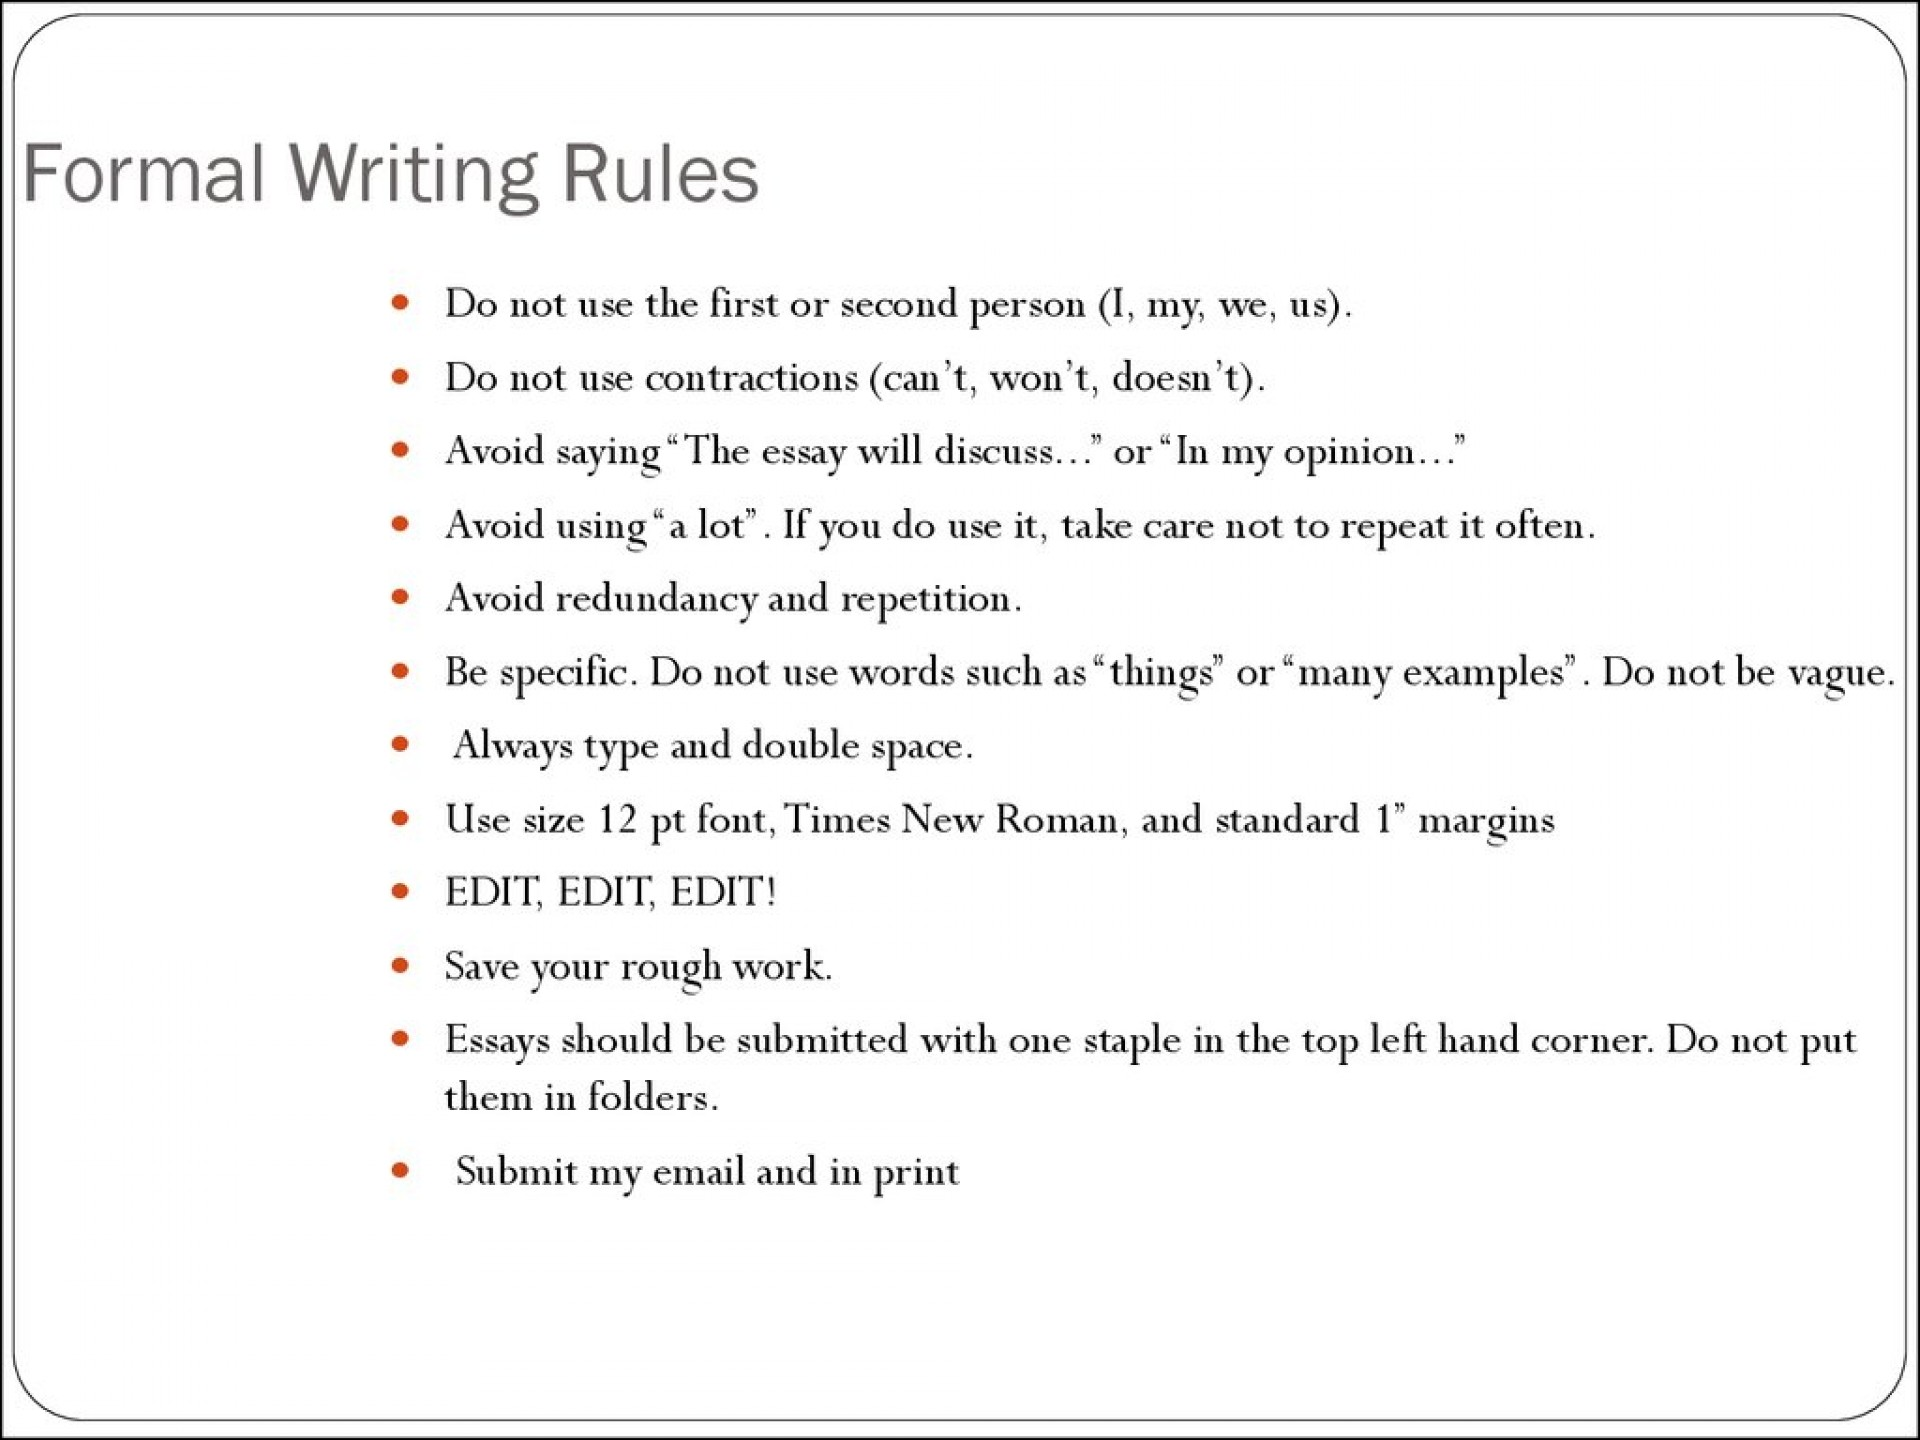 005 Essay Writing Rules Example Slide Awful And Regulations For Ielts With Examples 1920